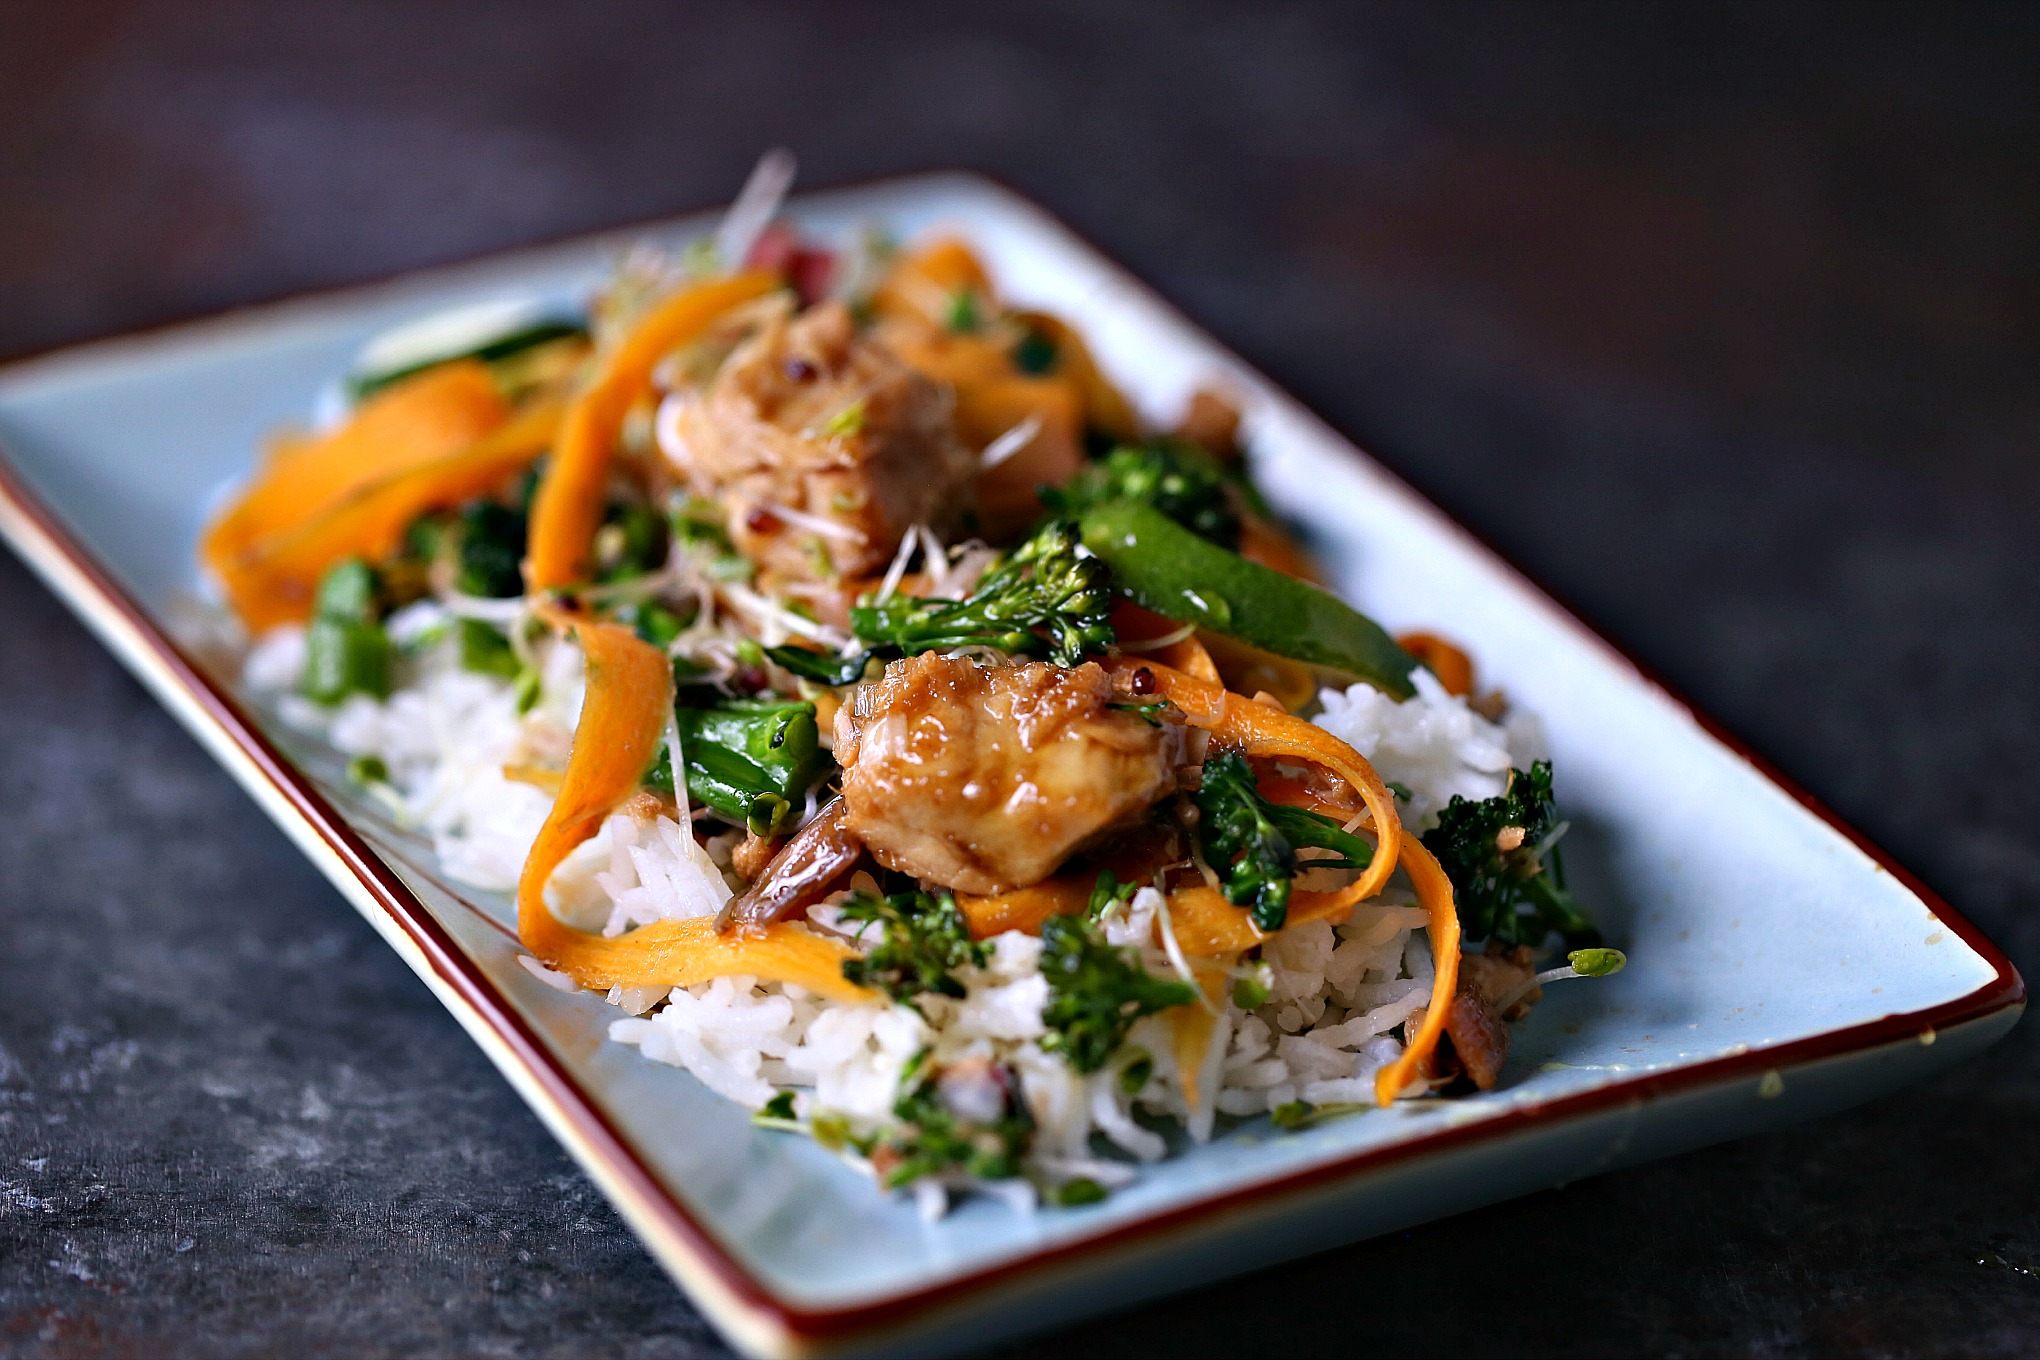 Easy Tuna Stir-Fry Bowls from cravingsofalunatic.com- This easy stir-fry recipe combines albacore tuna, broccolini, carrots, swiss chard, shallots, and broccoli sprouts. Finish with a squeeze of lime, and drizzle of honey.